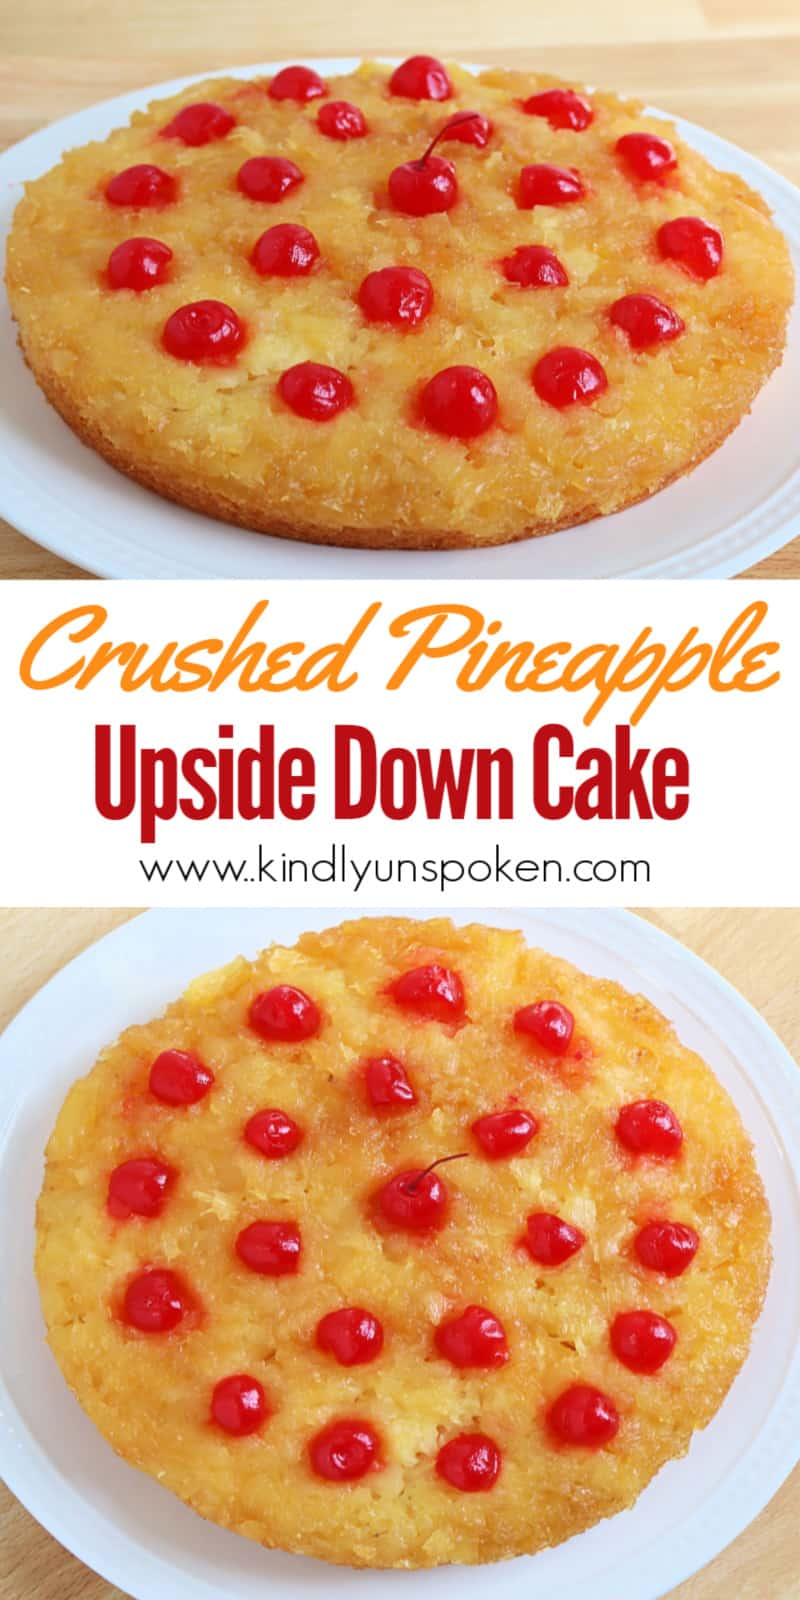 Try my easy and quick pineapple upside down cake for a delicious twist on a classic cake! My crushed pineapple upside down cake is made in two round cake pans with a box yellow cake mix and features a brown sugar glaze with double the pineapple. You'll want to make this simple pineapple cake ASAP! #pineappleupsidedowncake #pineapplecake #cakemix #cakerecipe